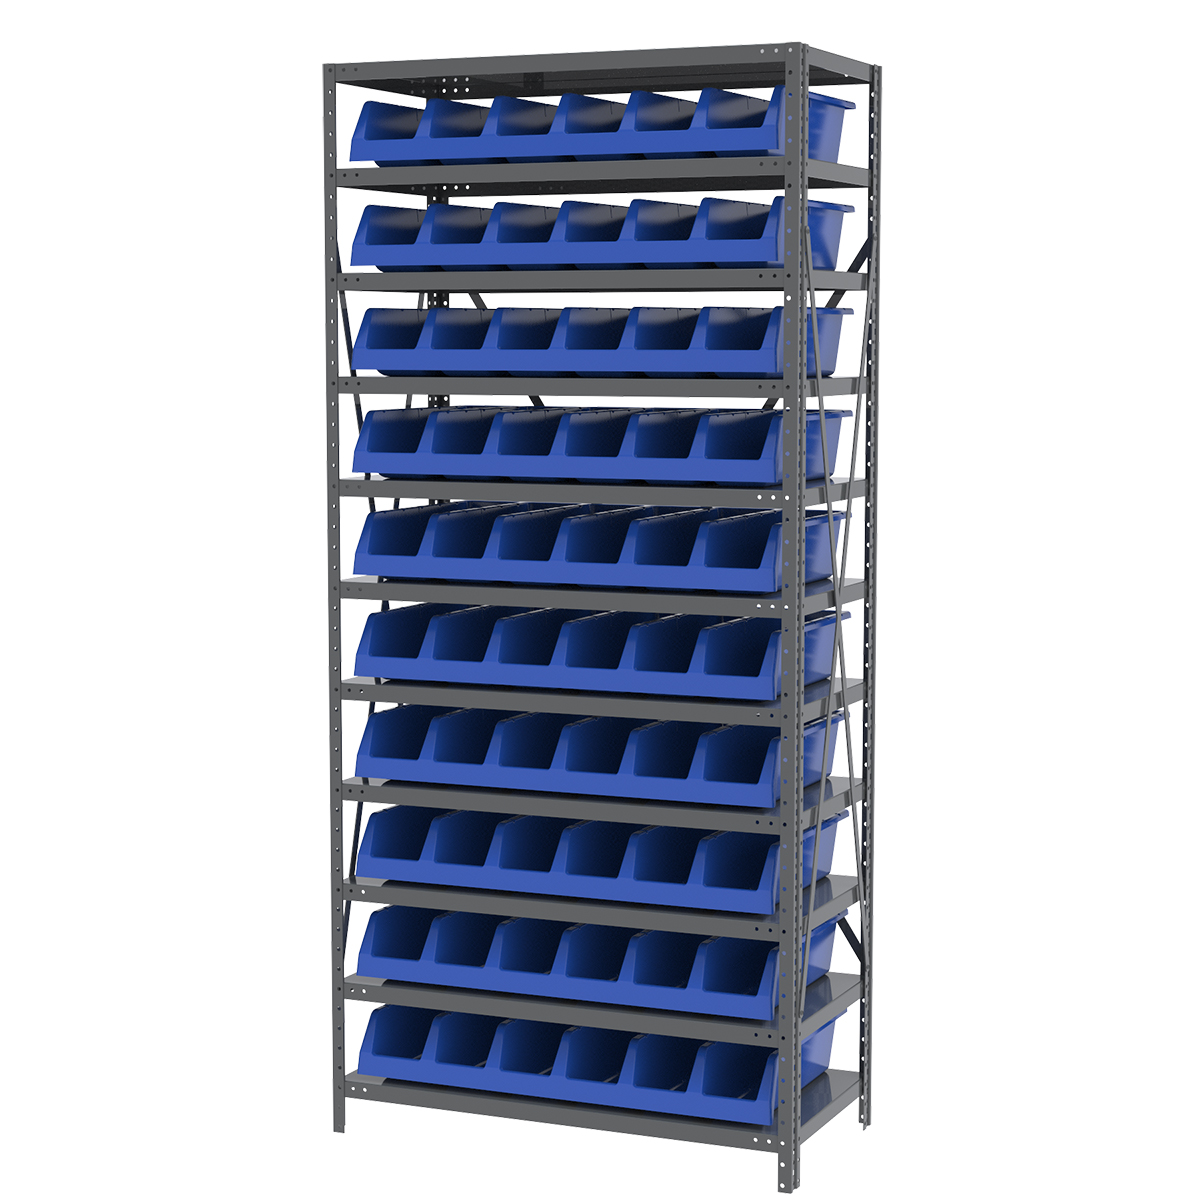 Steel Shelving Kit, 18x36x79, 10 Bins, Gray/Blue.  This item sold in carton quantities of 1.